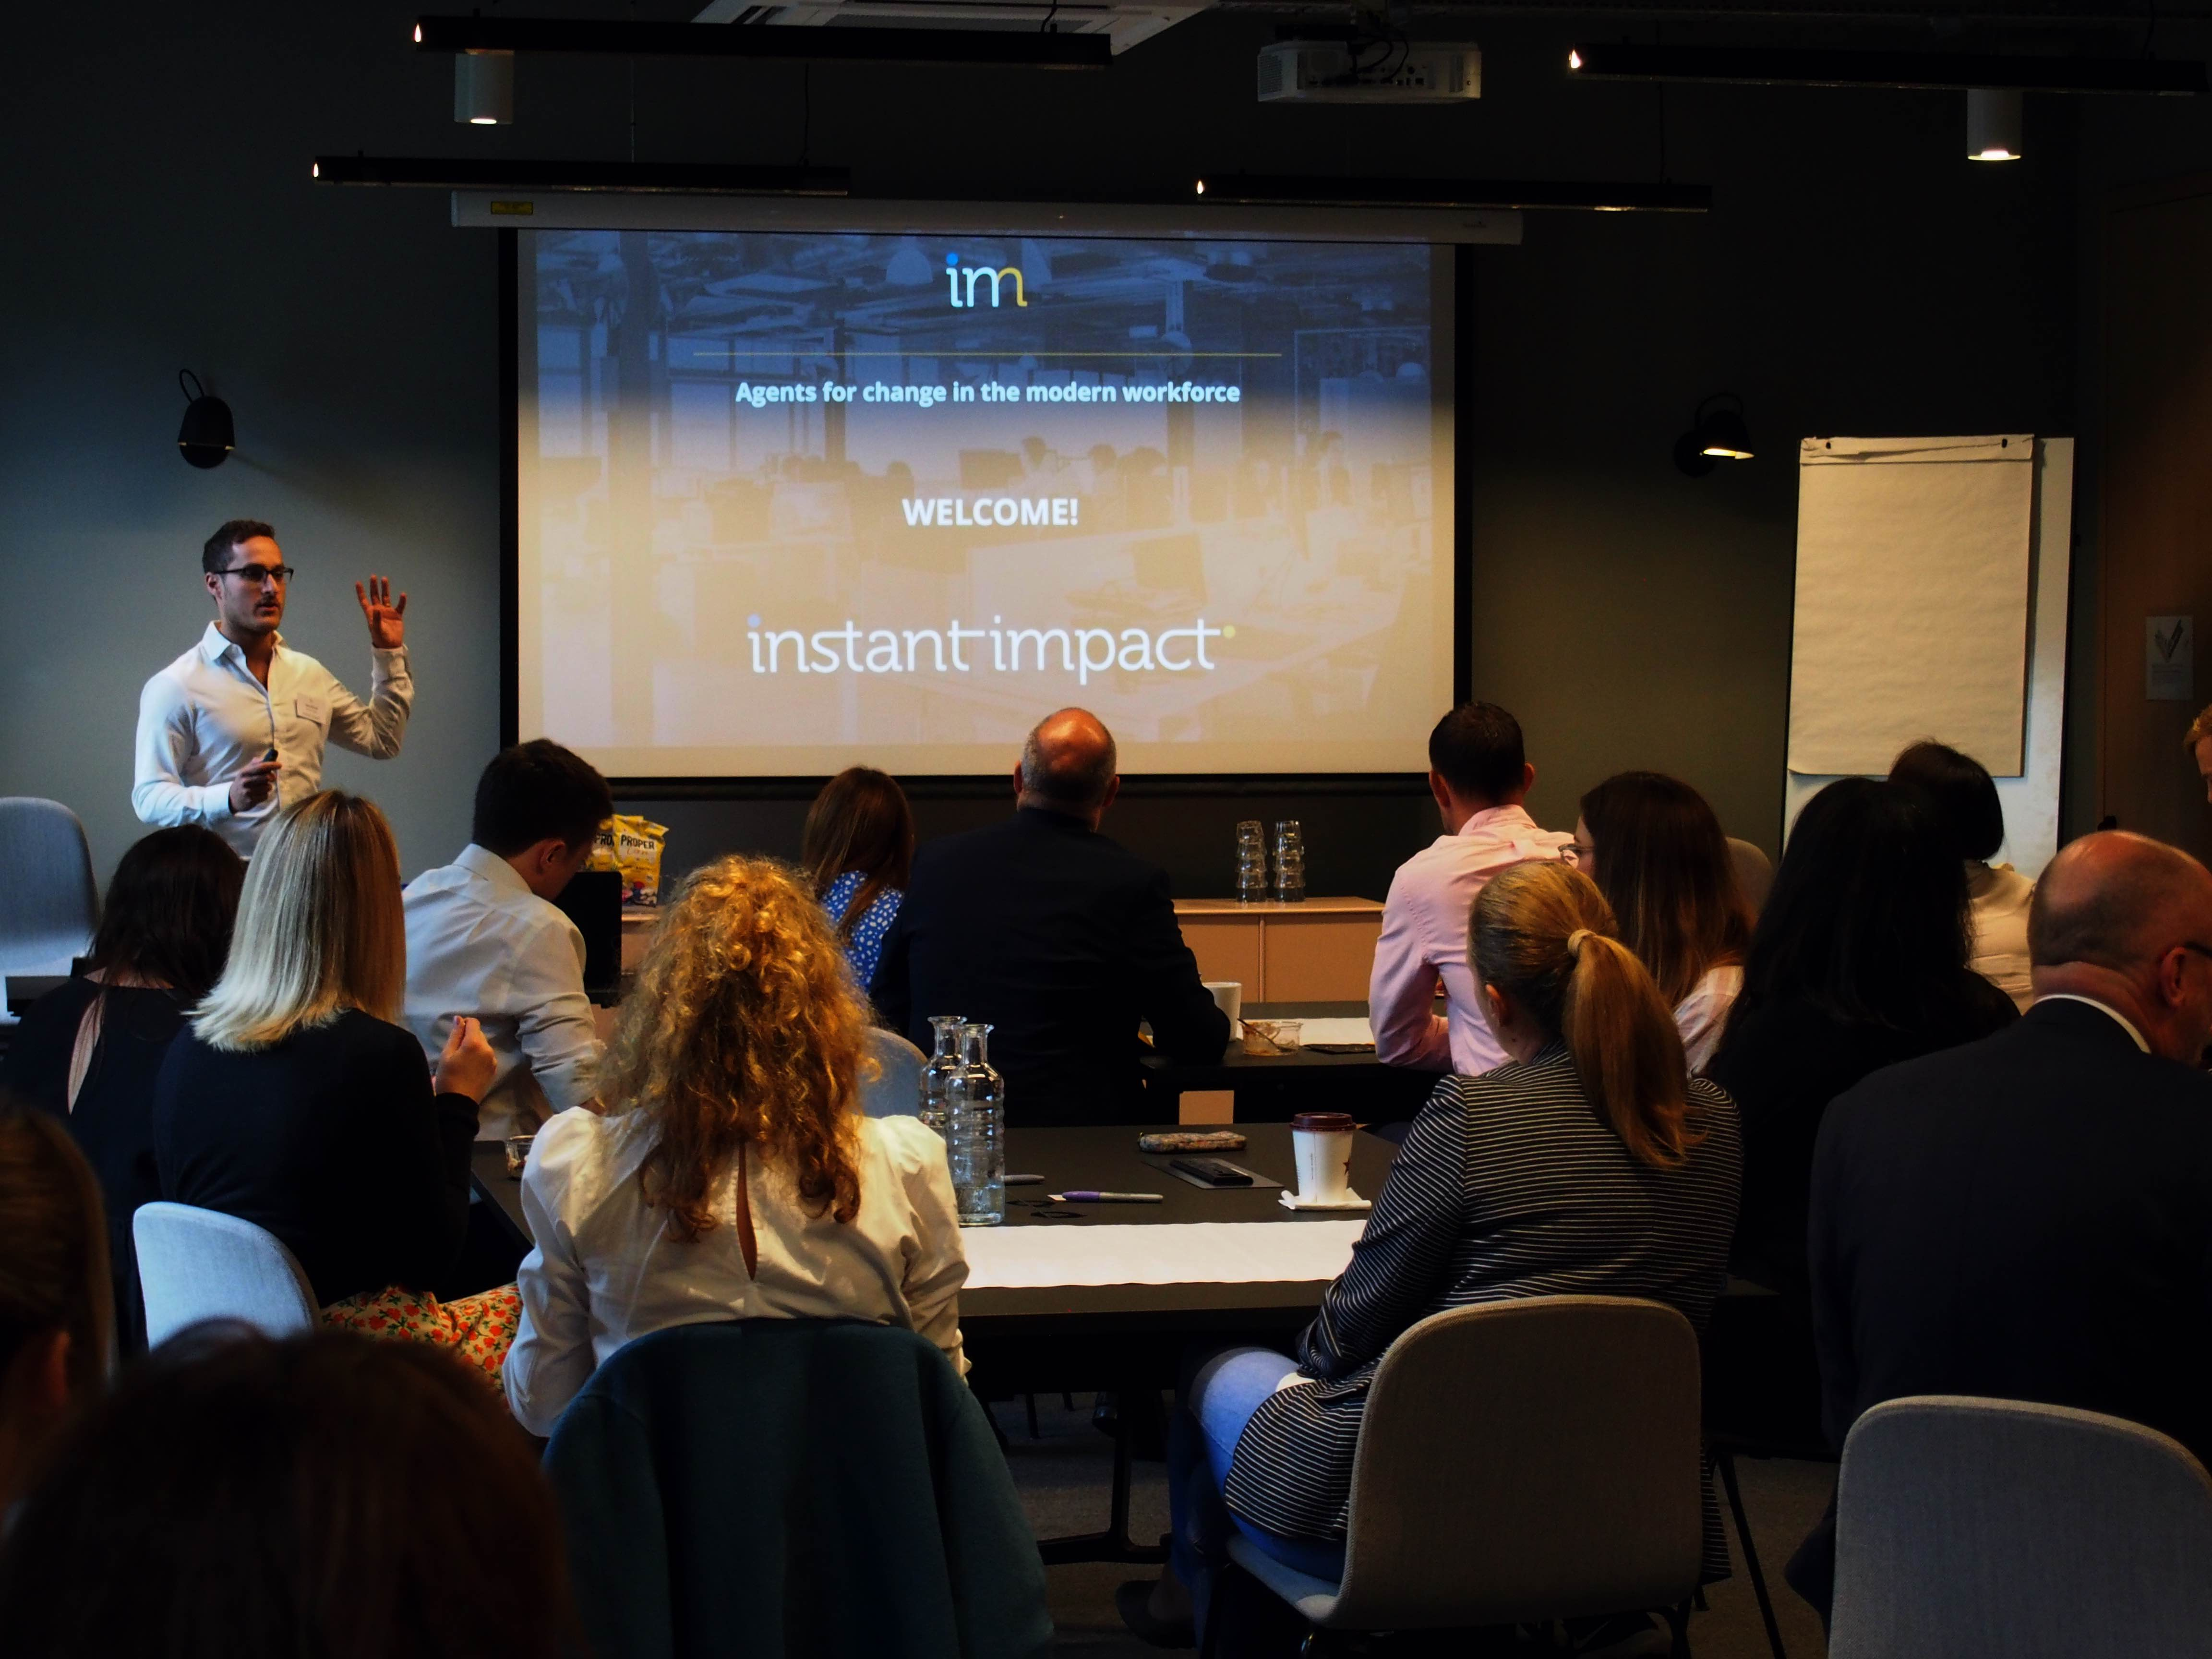 Barriers to diversity: Instant Impact Agents for Change